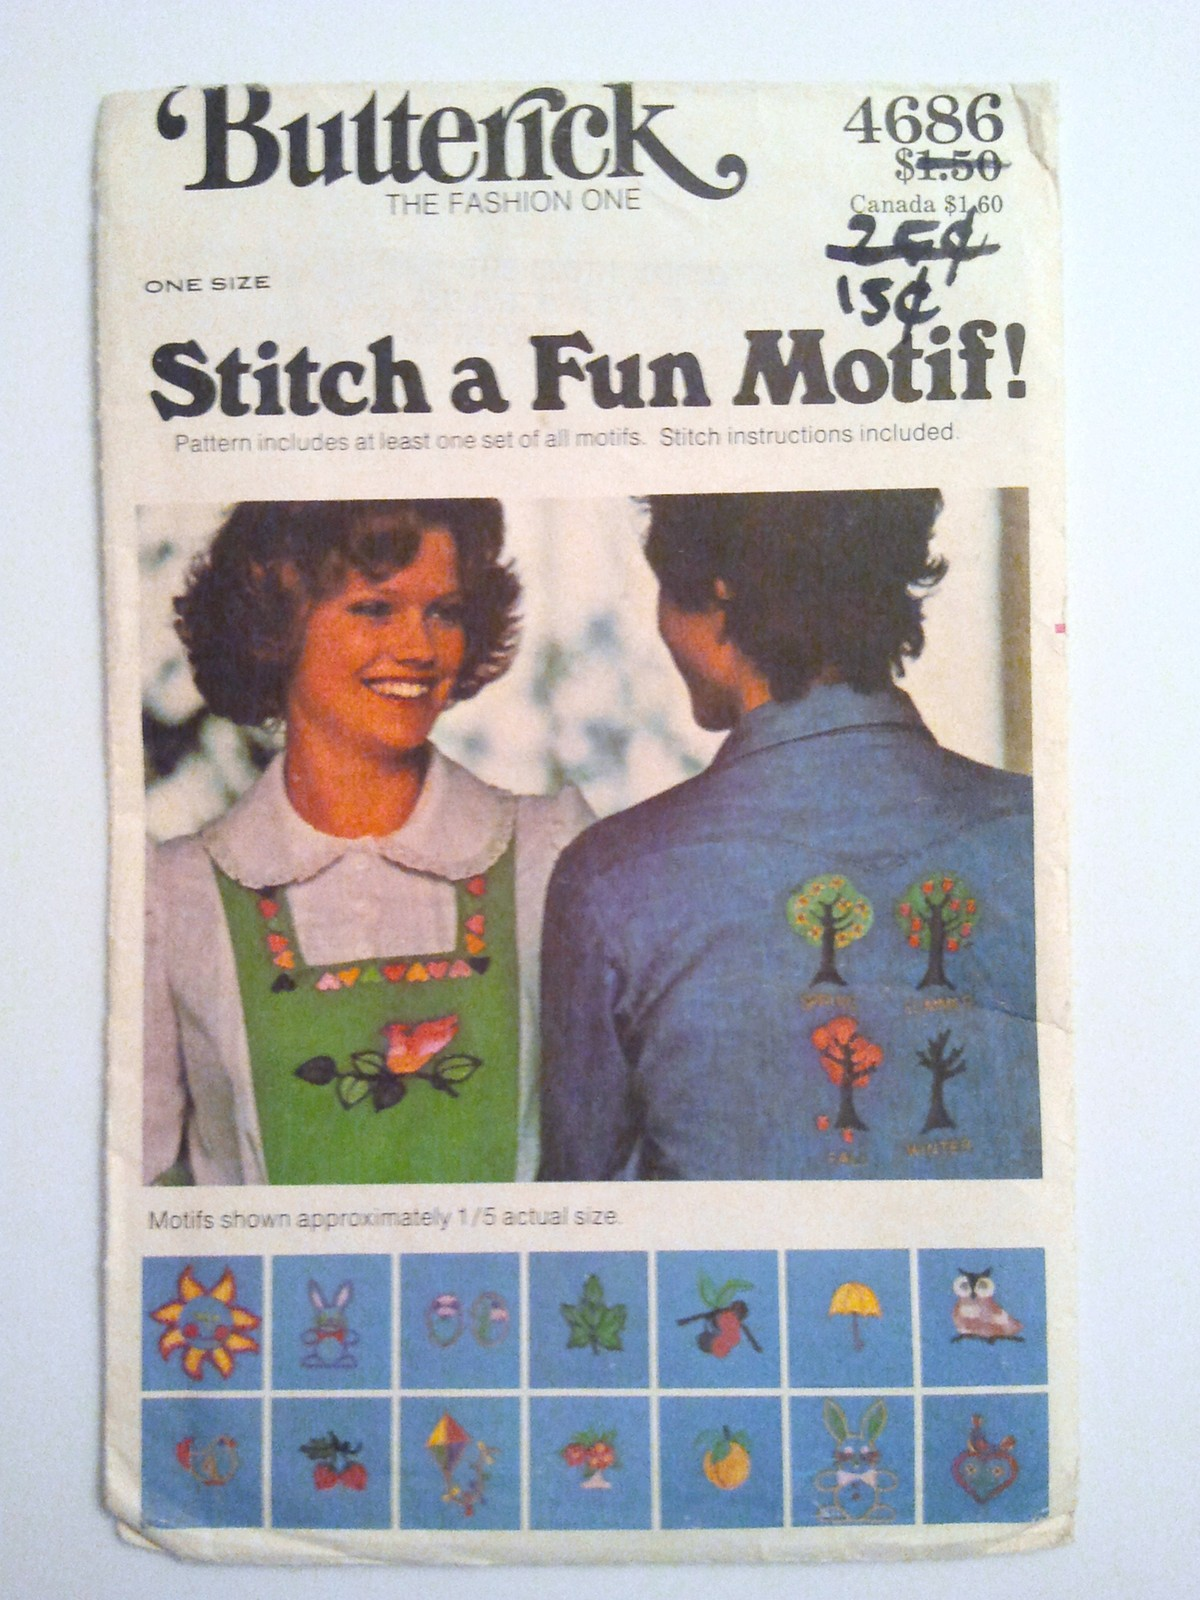 Butterick 4686, Embroidery Transfer Stitch a Fun Motif